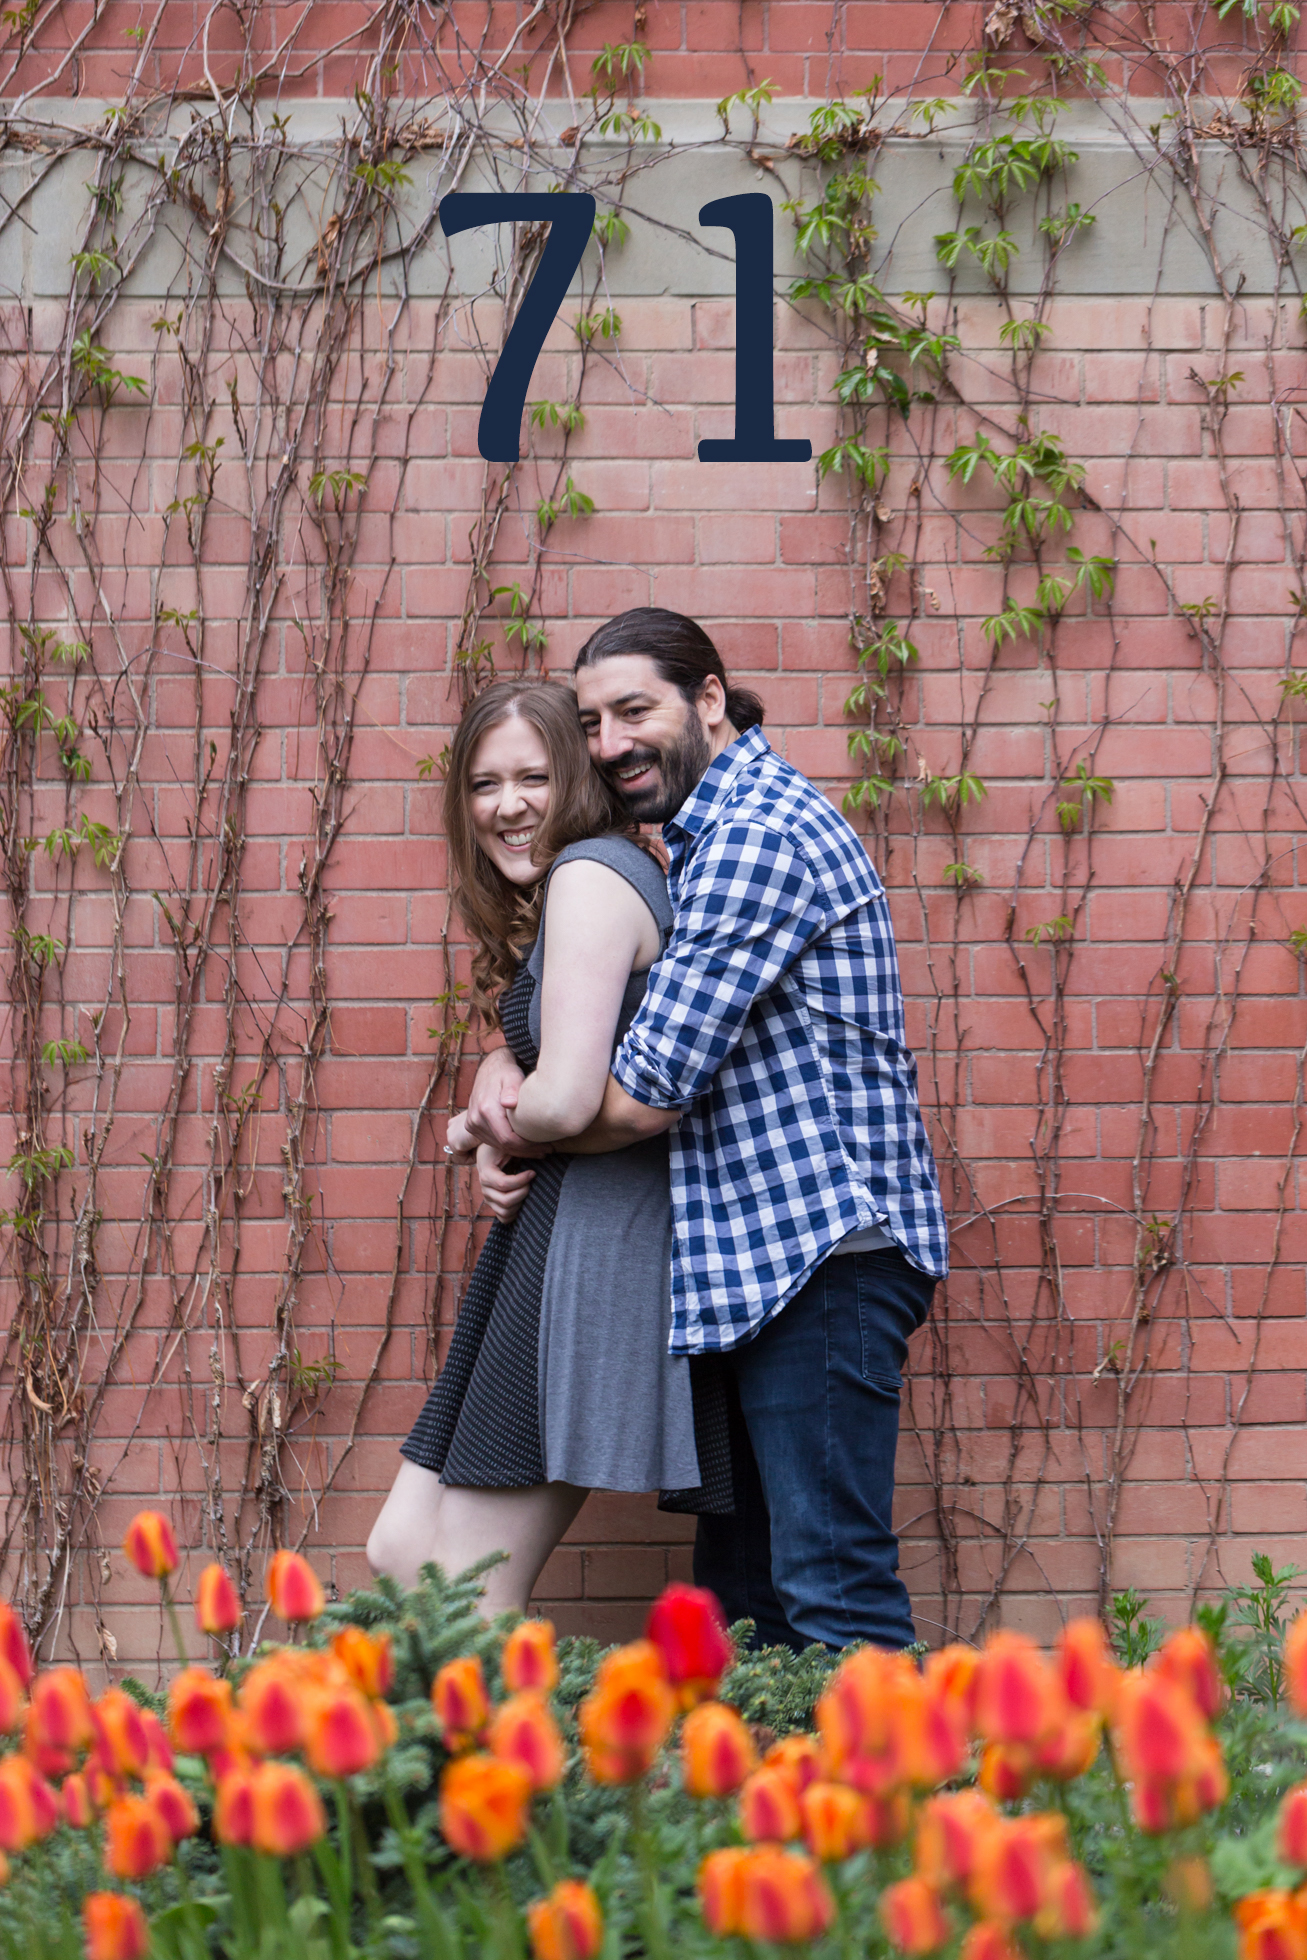 Kate and Jordan Engagement Cover Photo (Life by Selena Photography).jpg